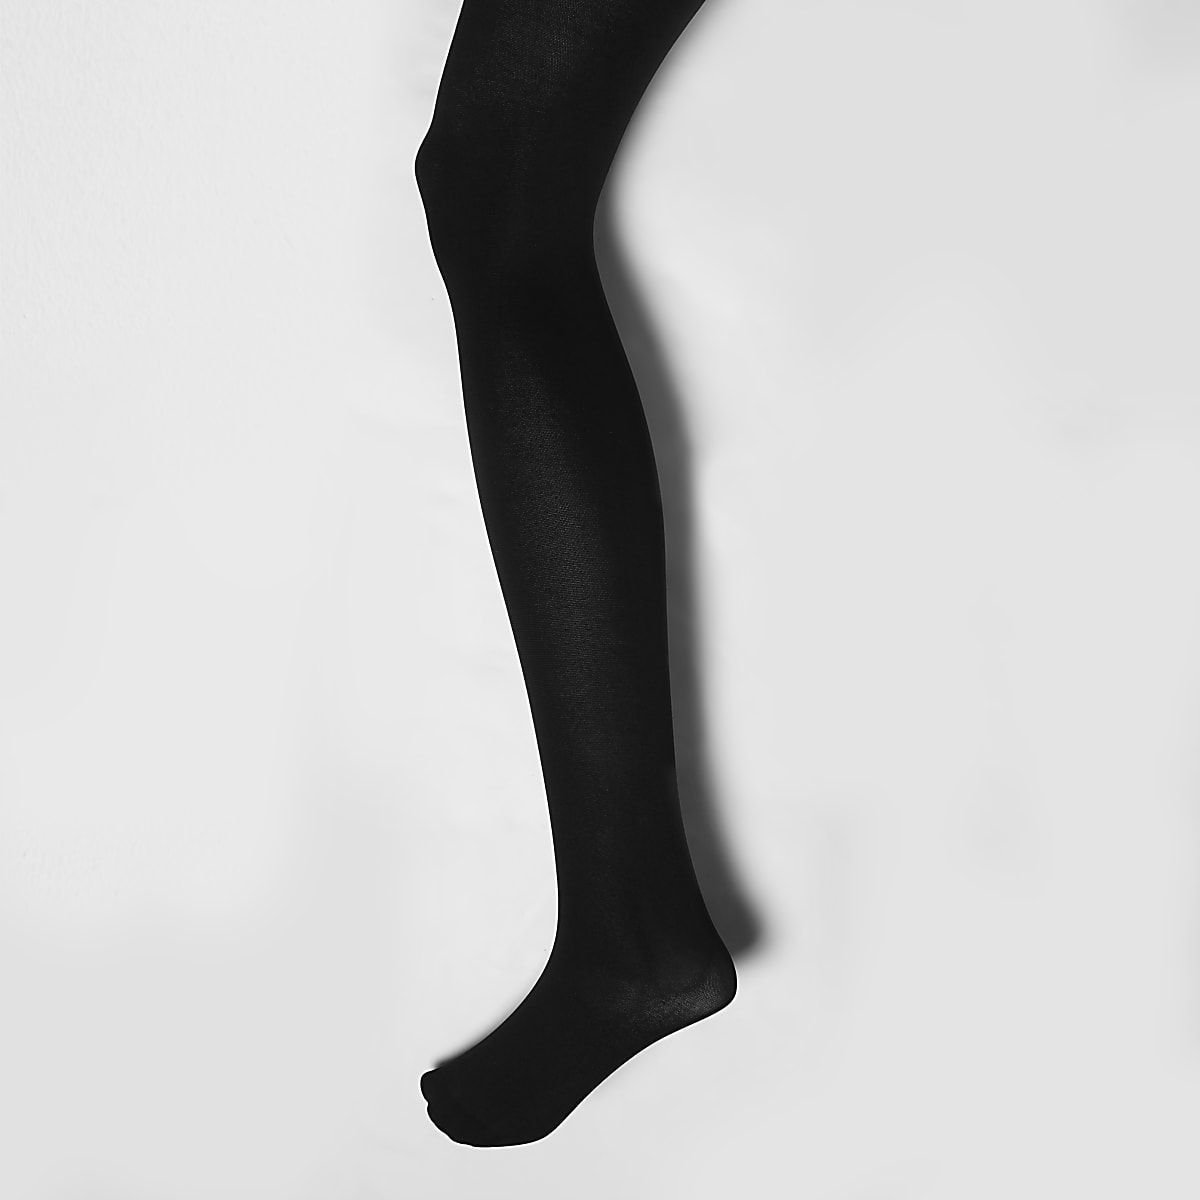 Black 80 denier tights